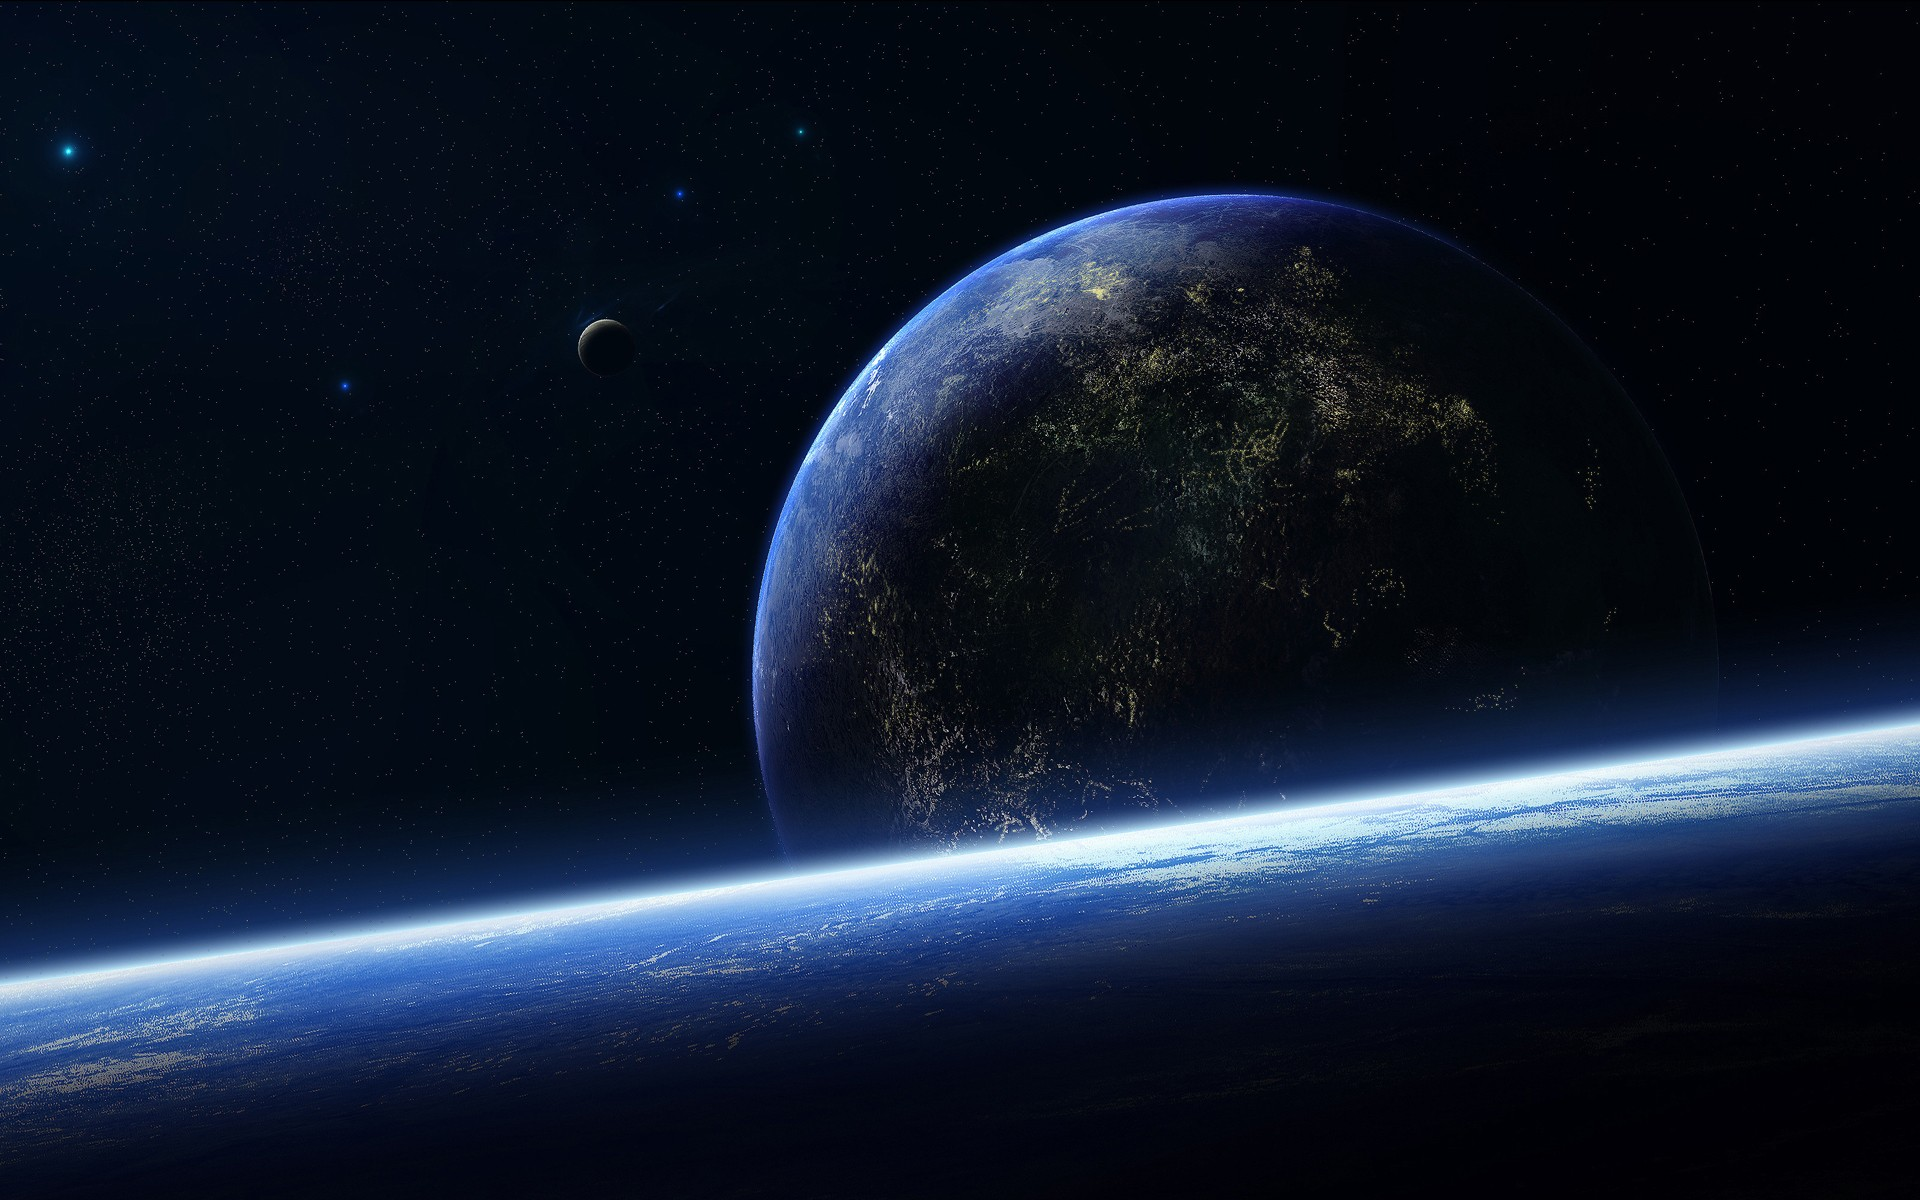 earth from outer space - photo #18